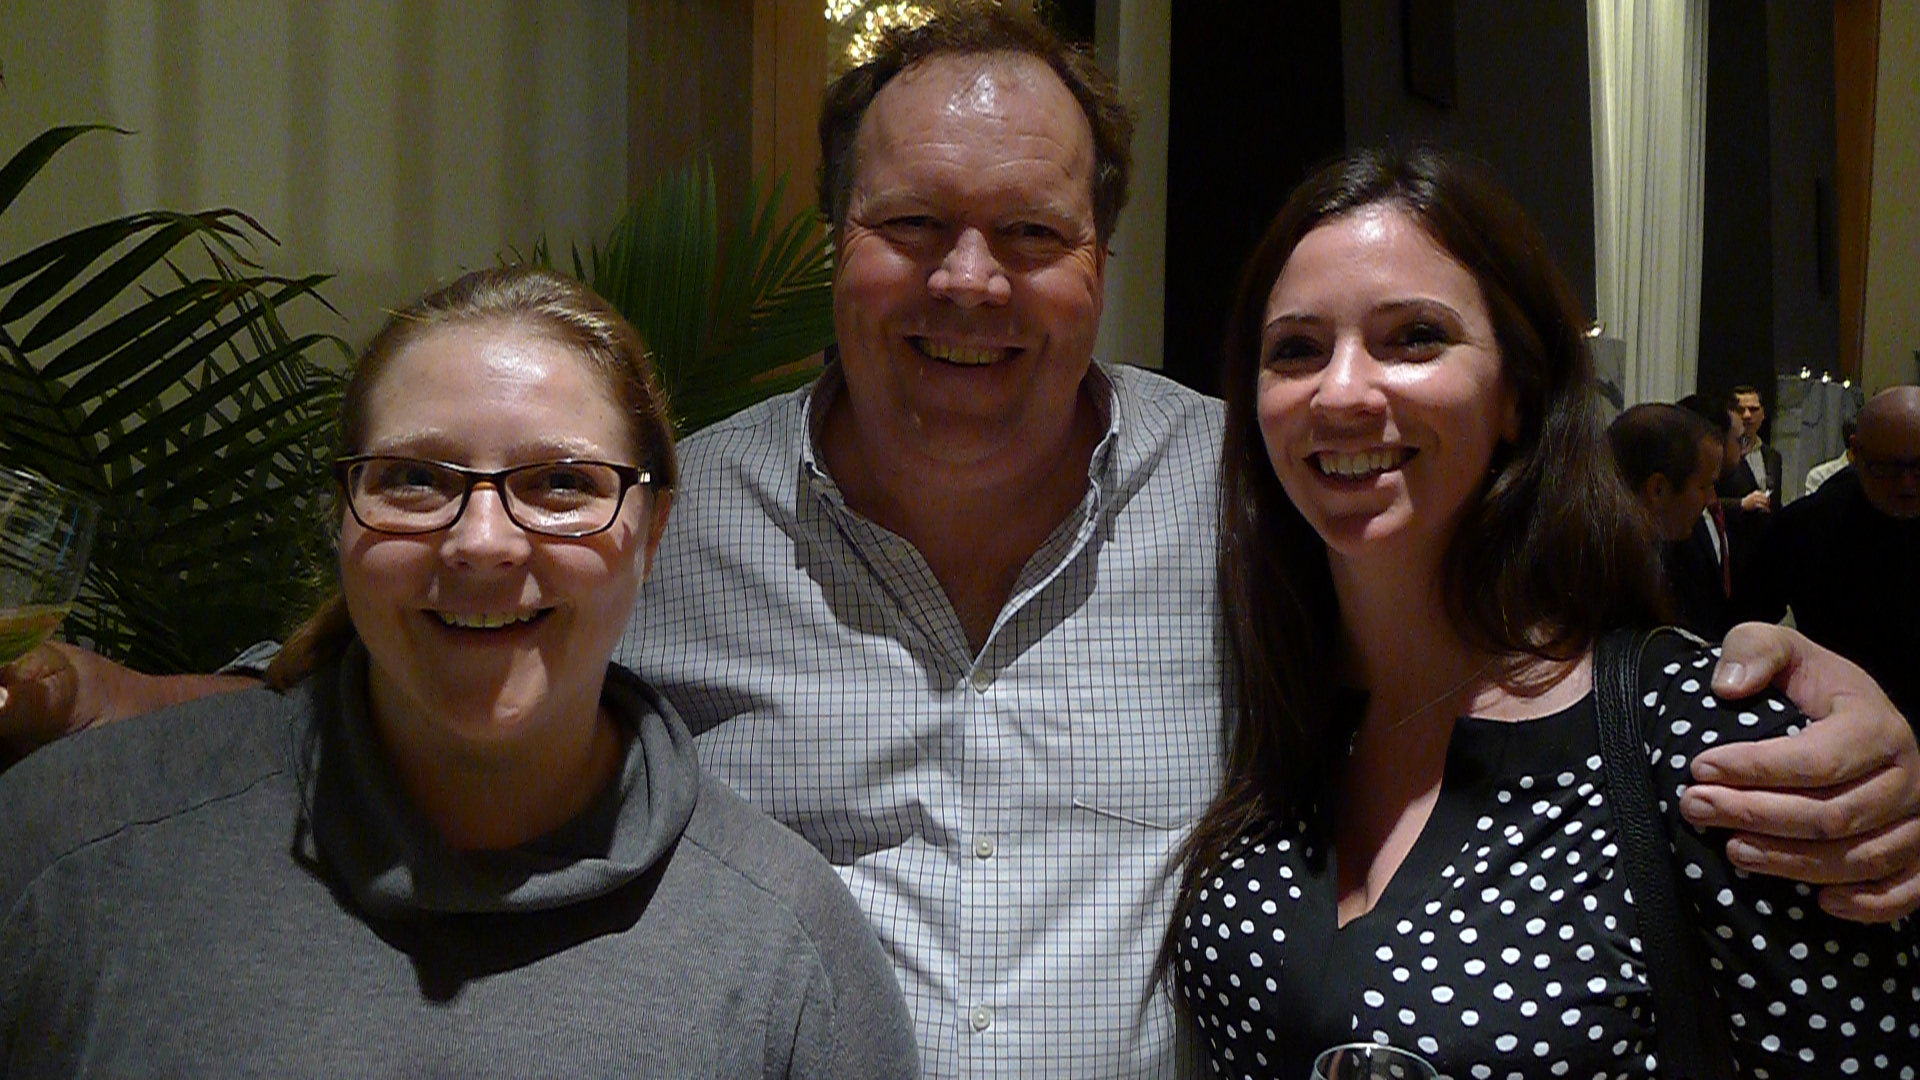 Katy Moore (The Case For Wine), Winemaker Norman Hardie, and Brae Mason (Langdon Hall).